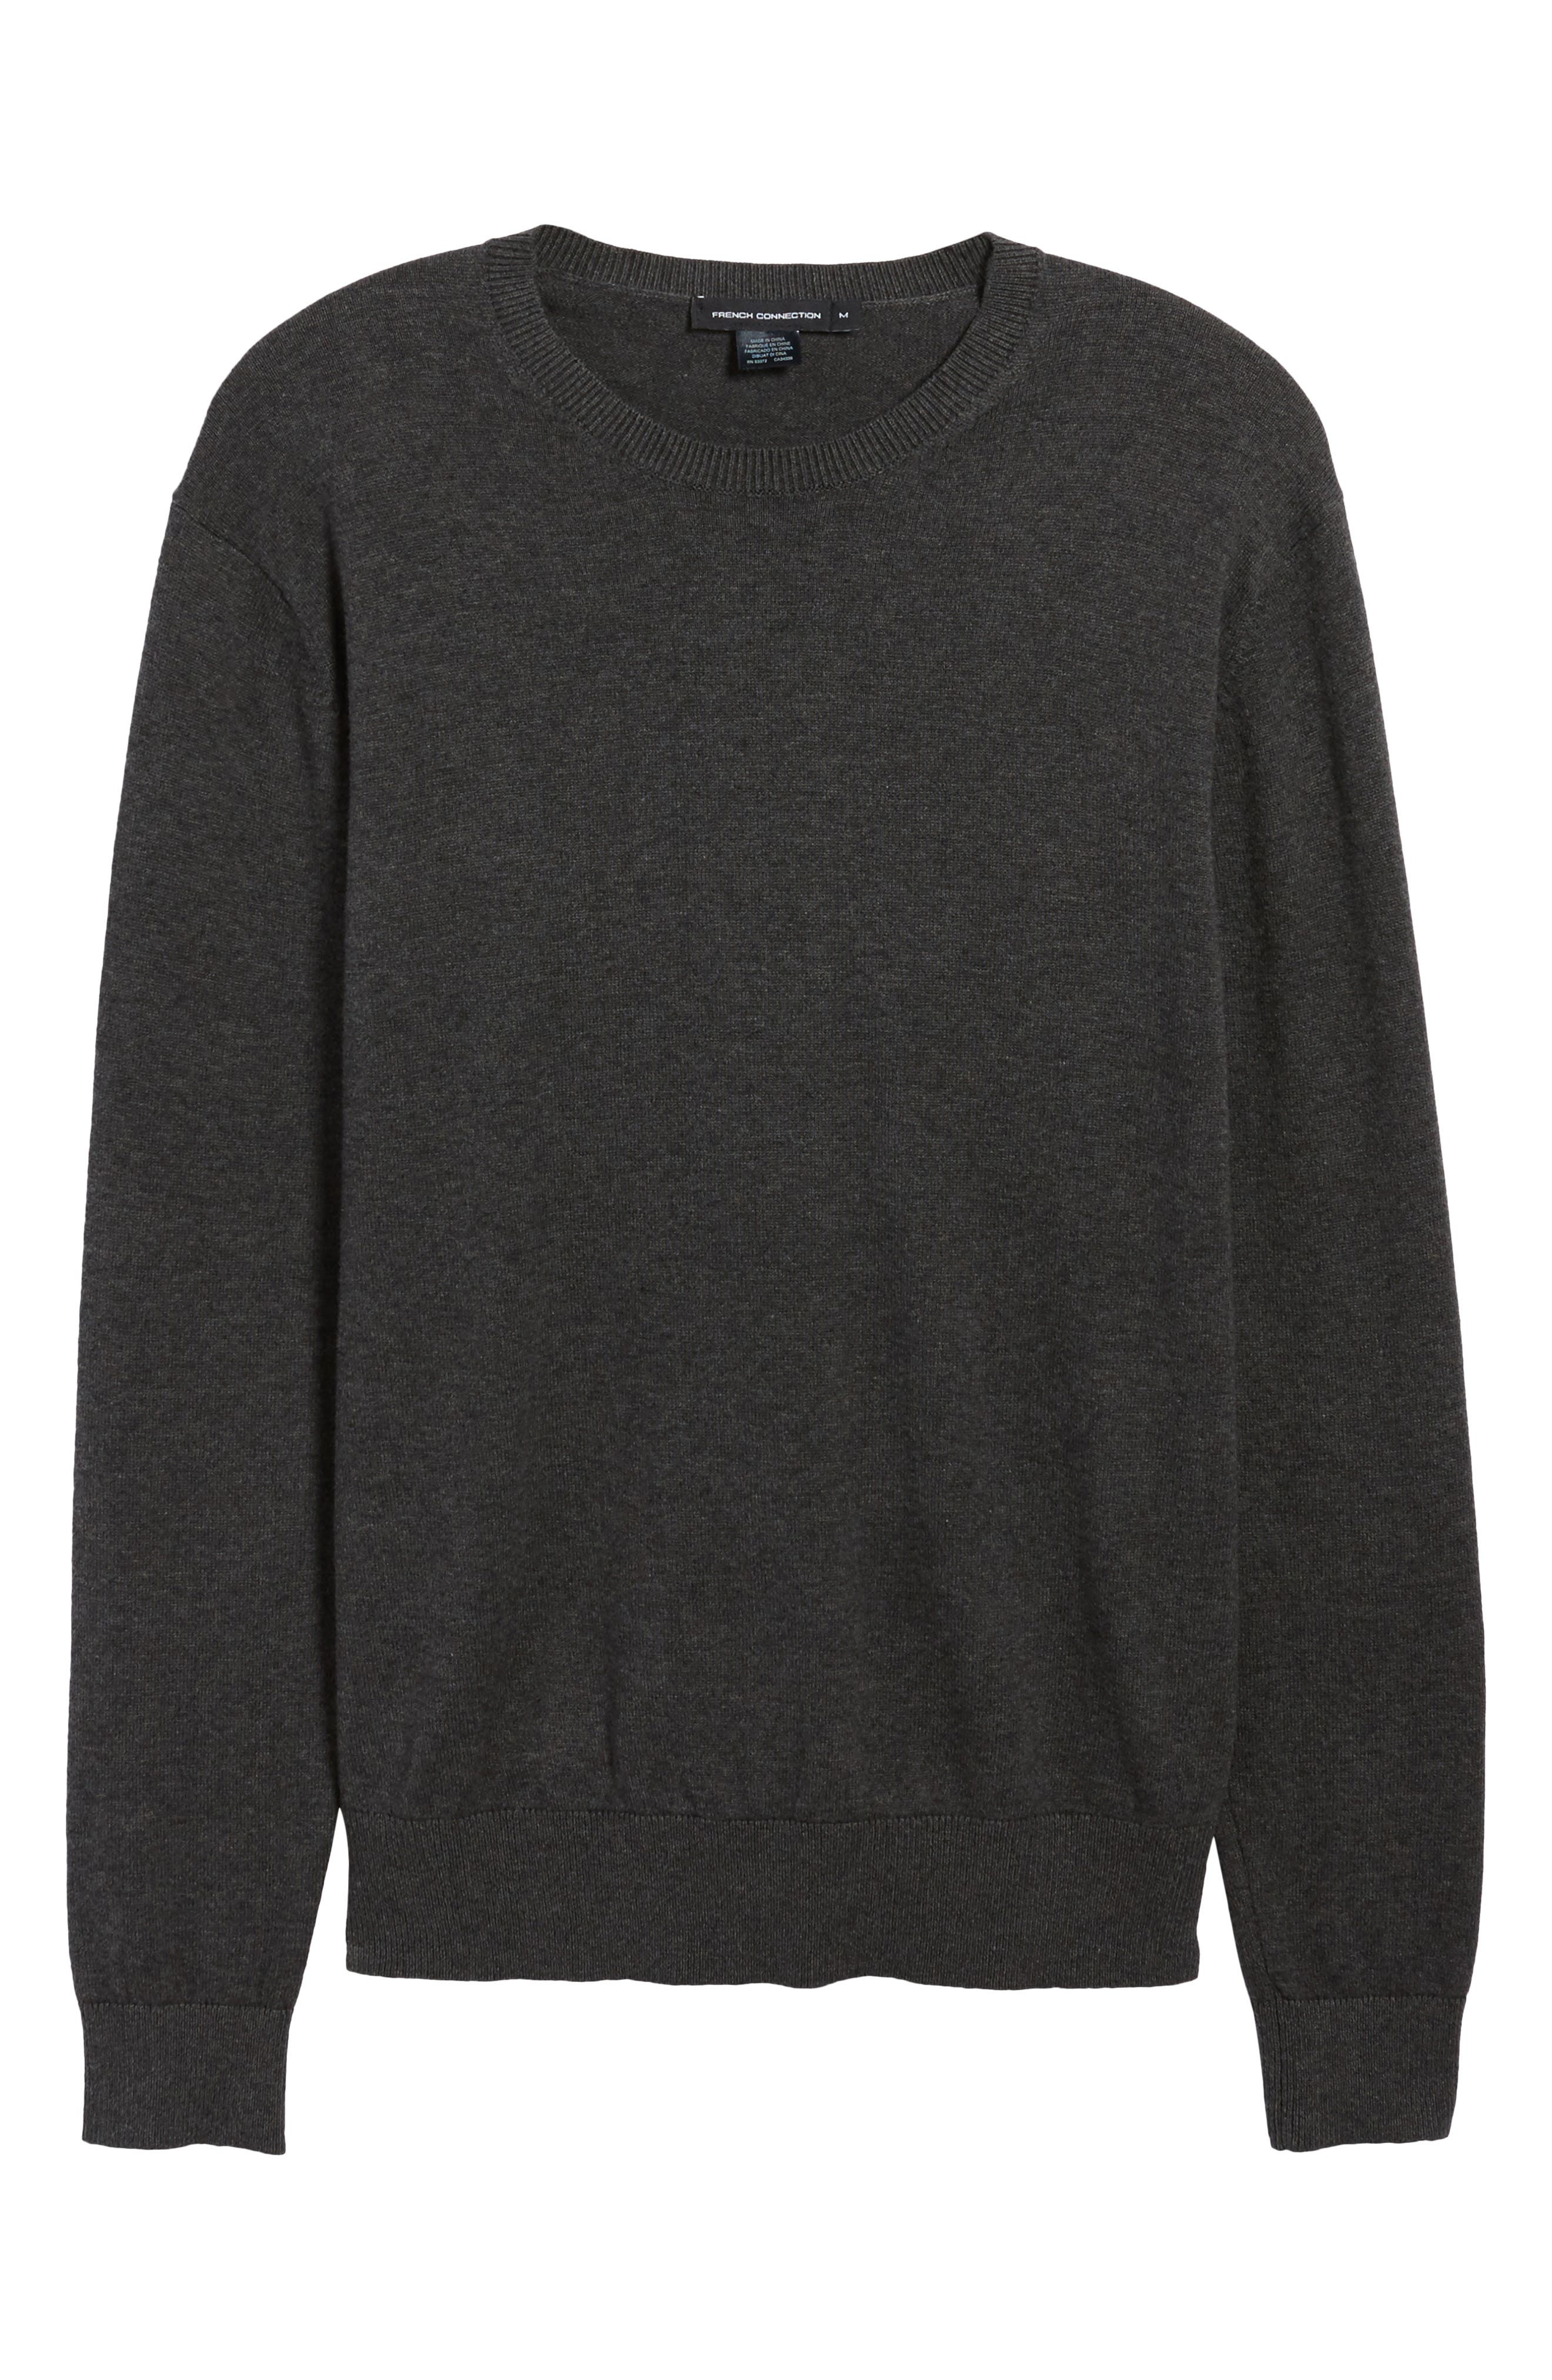 Portrait Crewneck Sweater,                             Alternate thumbnail 6, color,                             015